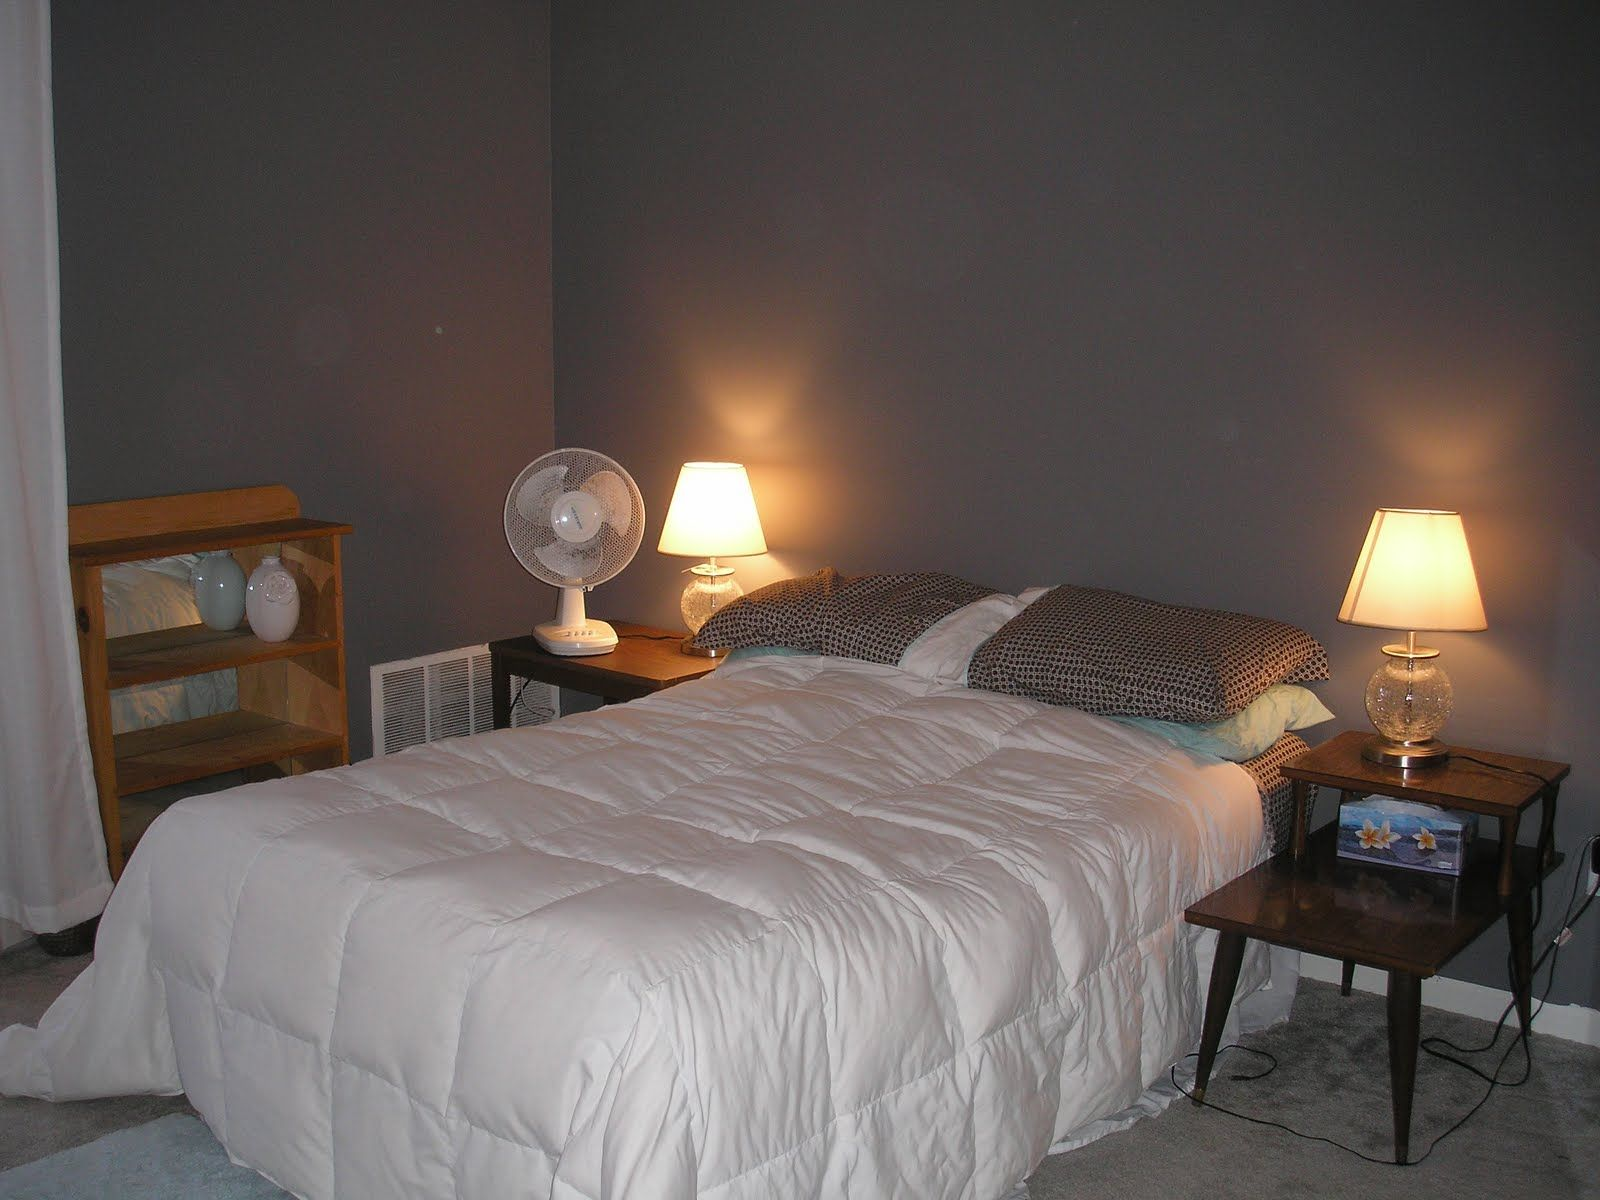 Bedrooms Without A Headboard Ideas Bedroom Without Headboard Is